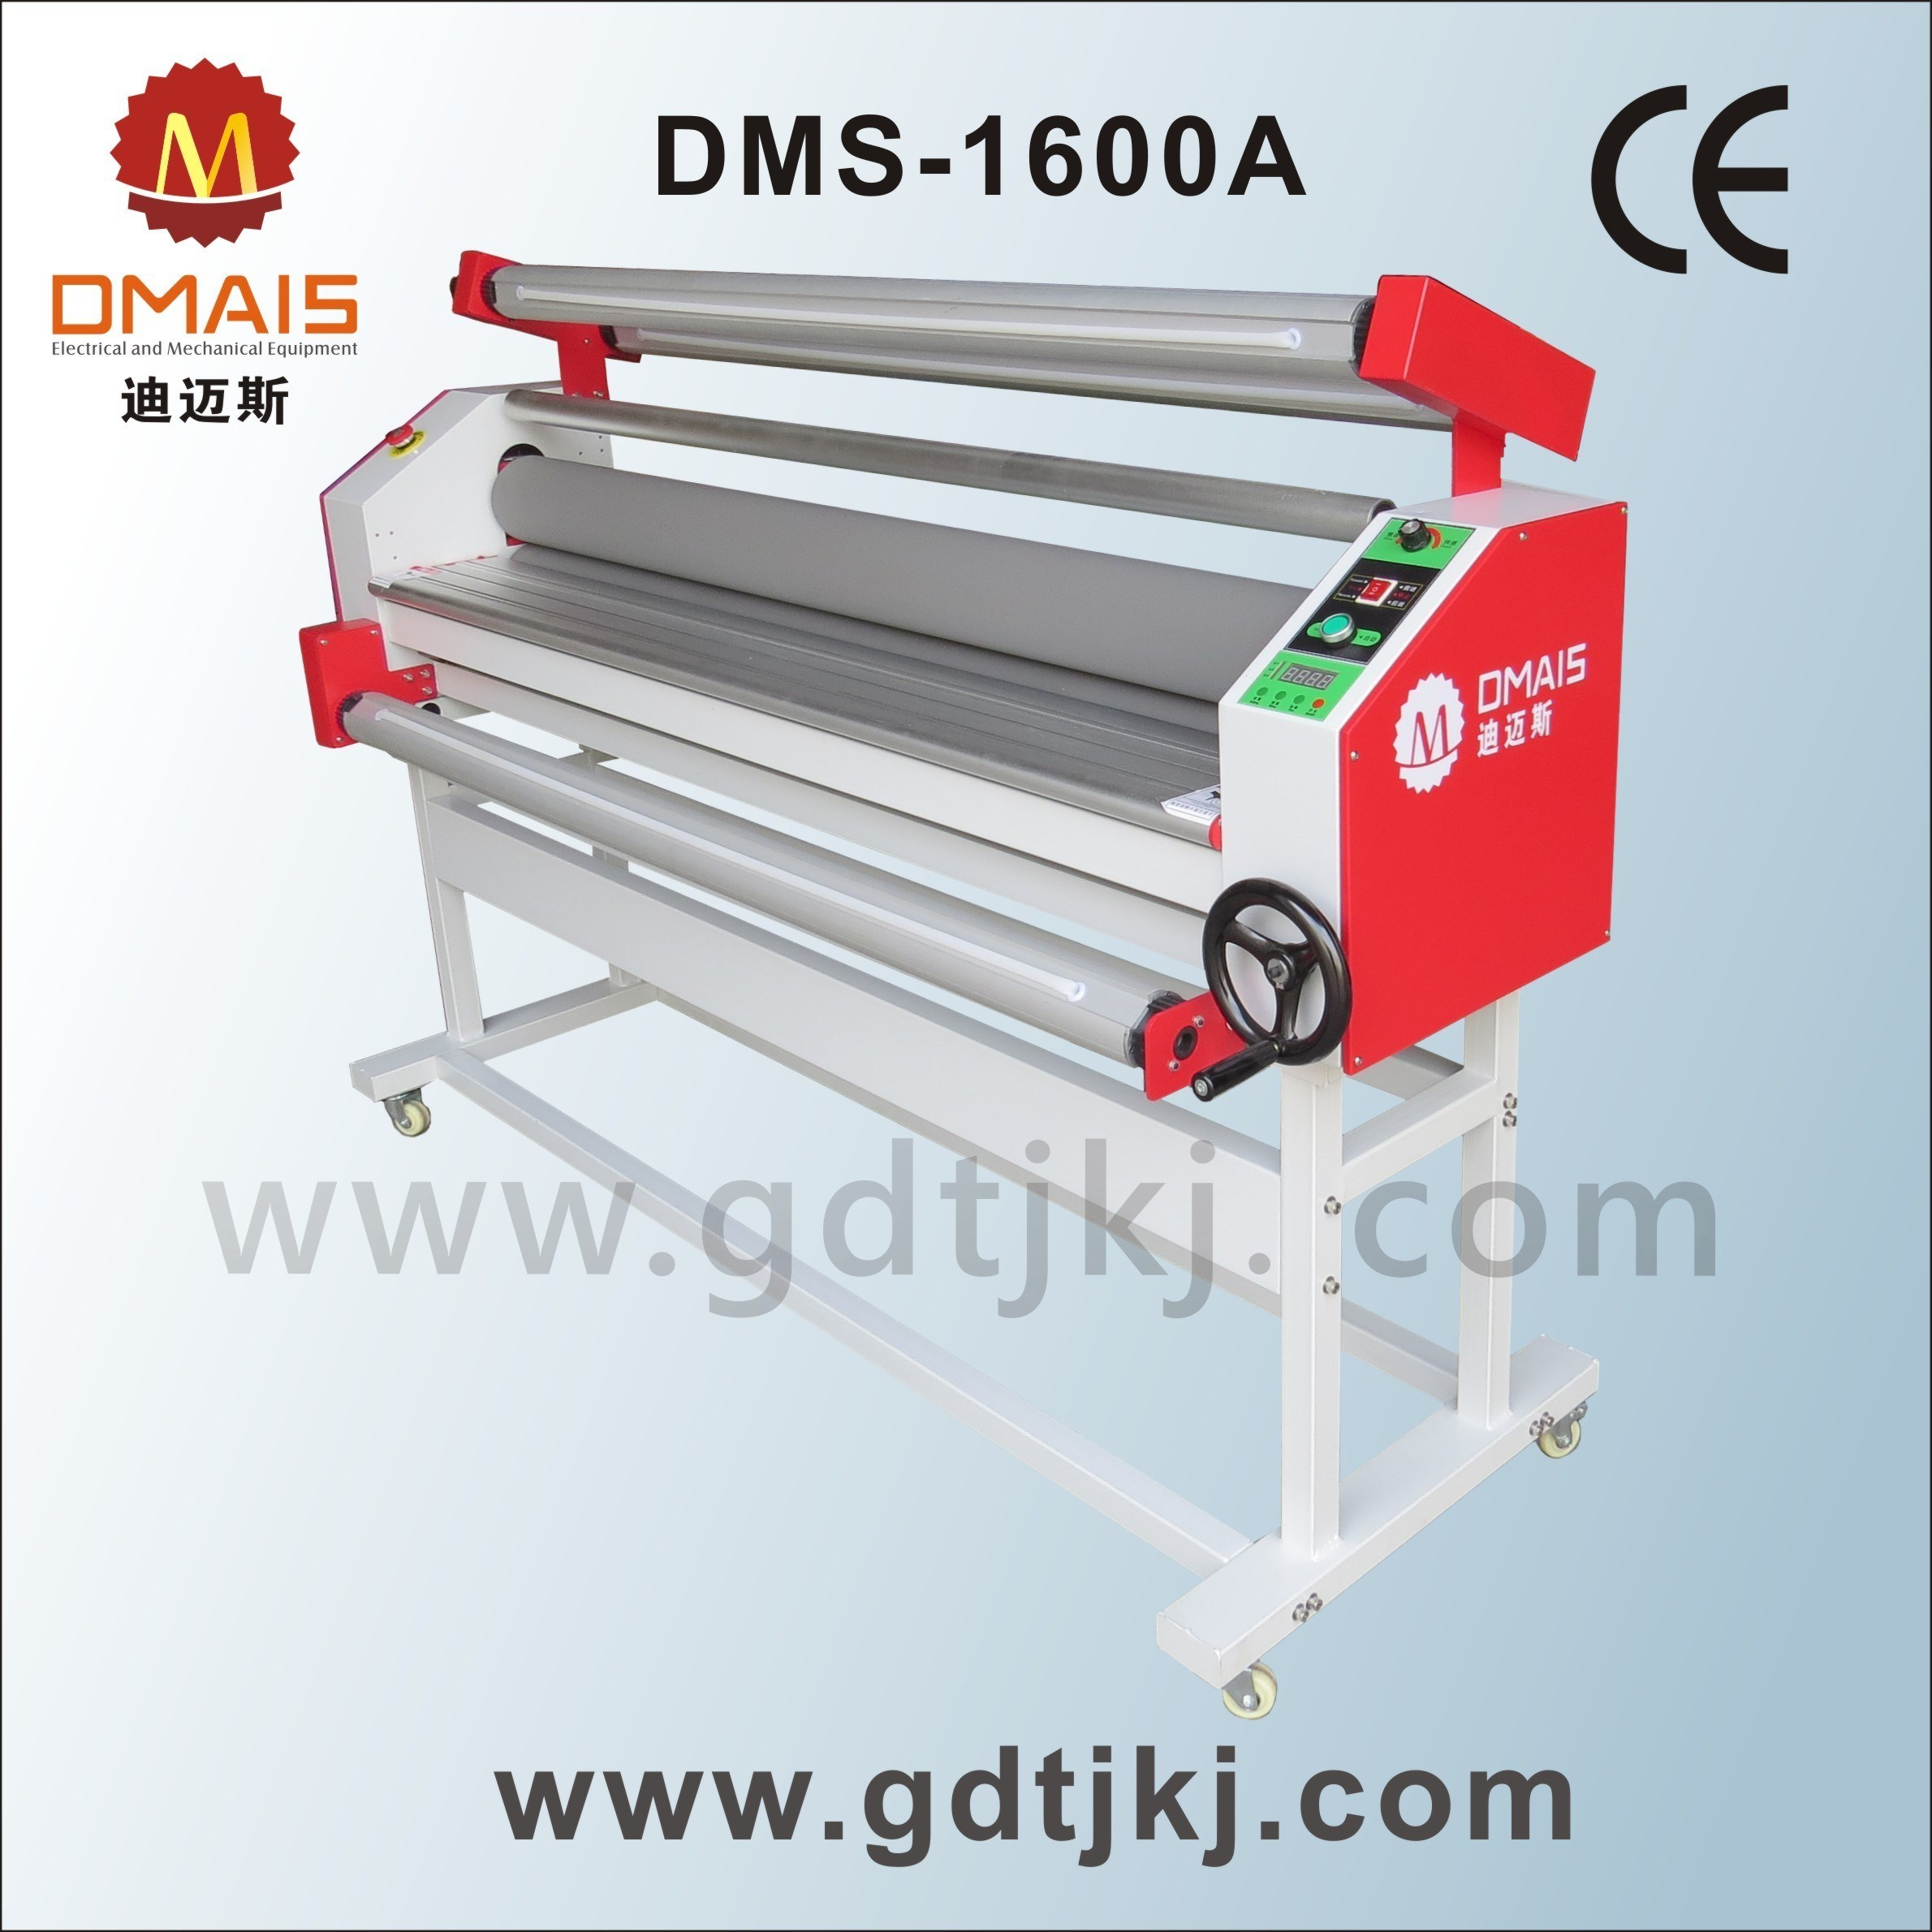 Dmais Hot and Cold Roll to Roll Laminating Machine